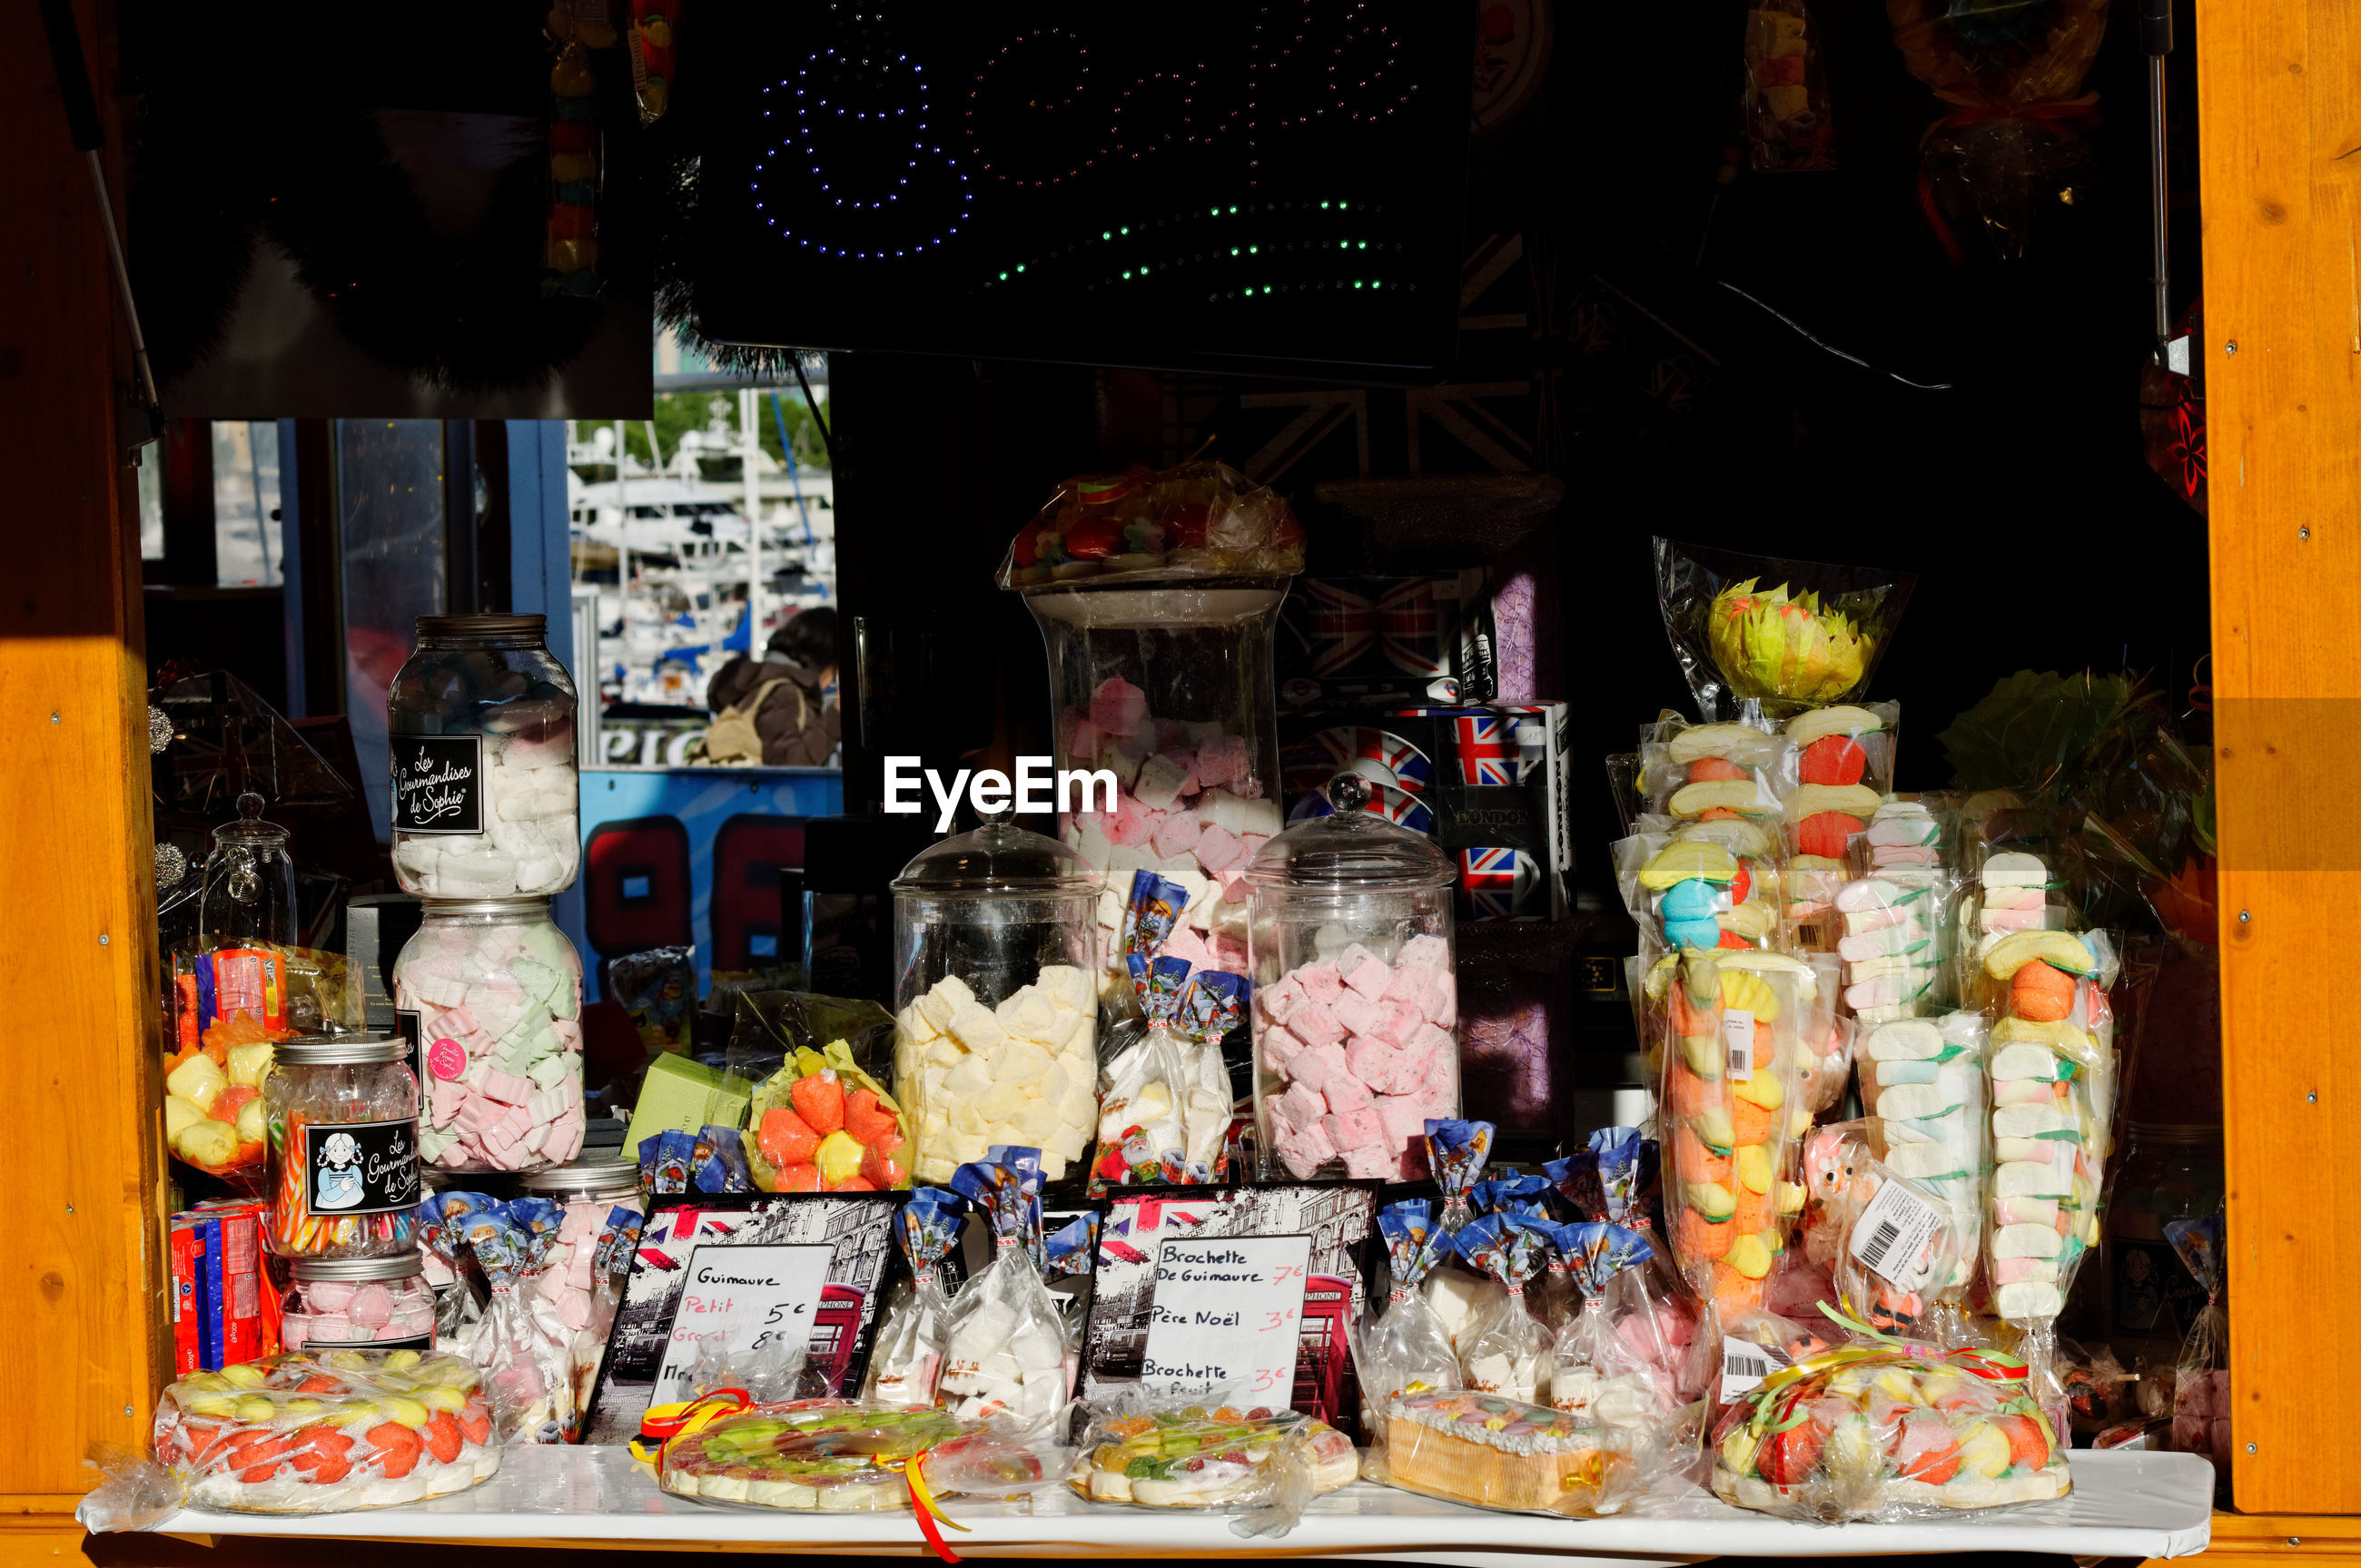 VIEW OF MARKET STALL